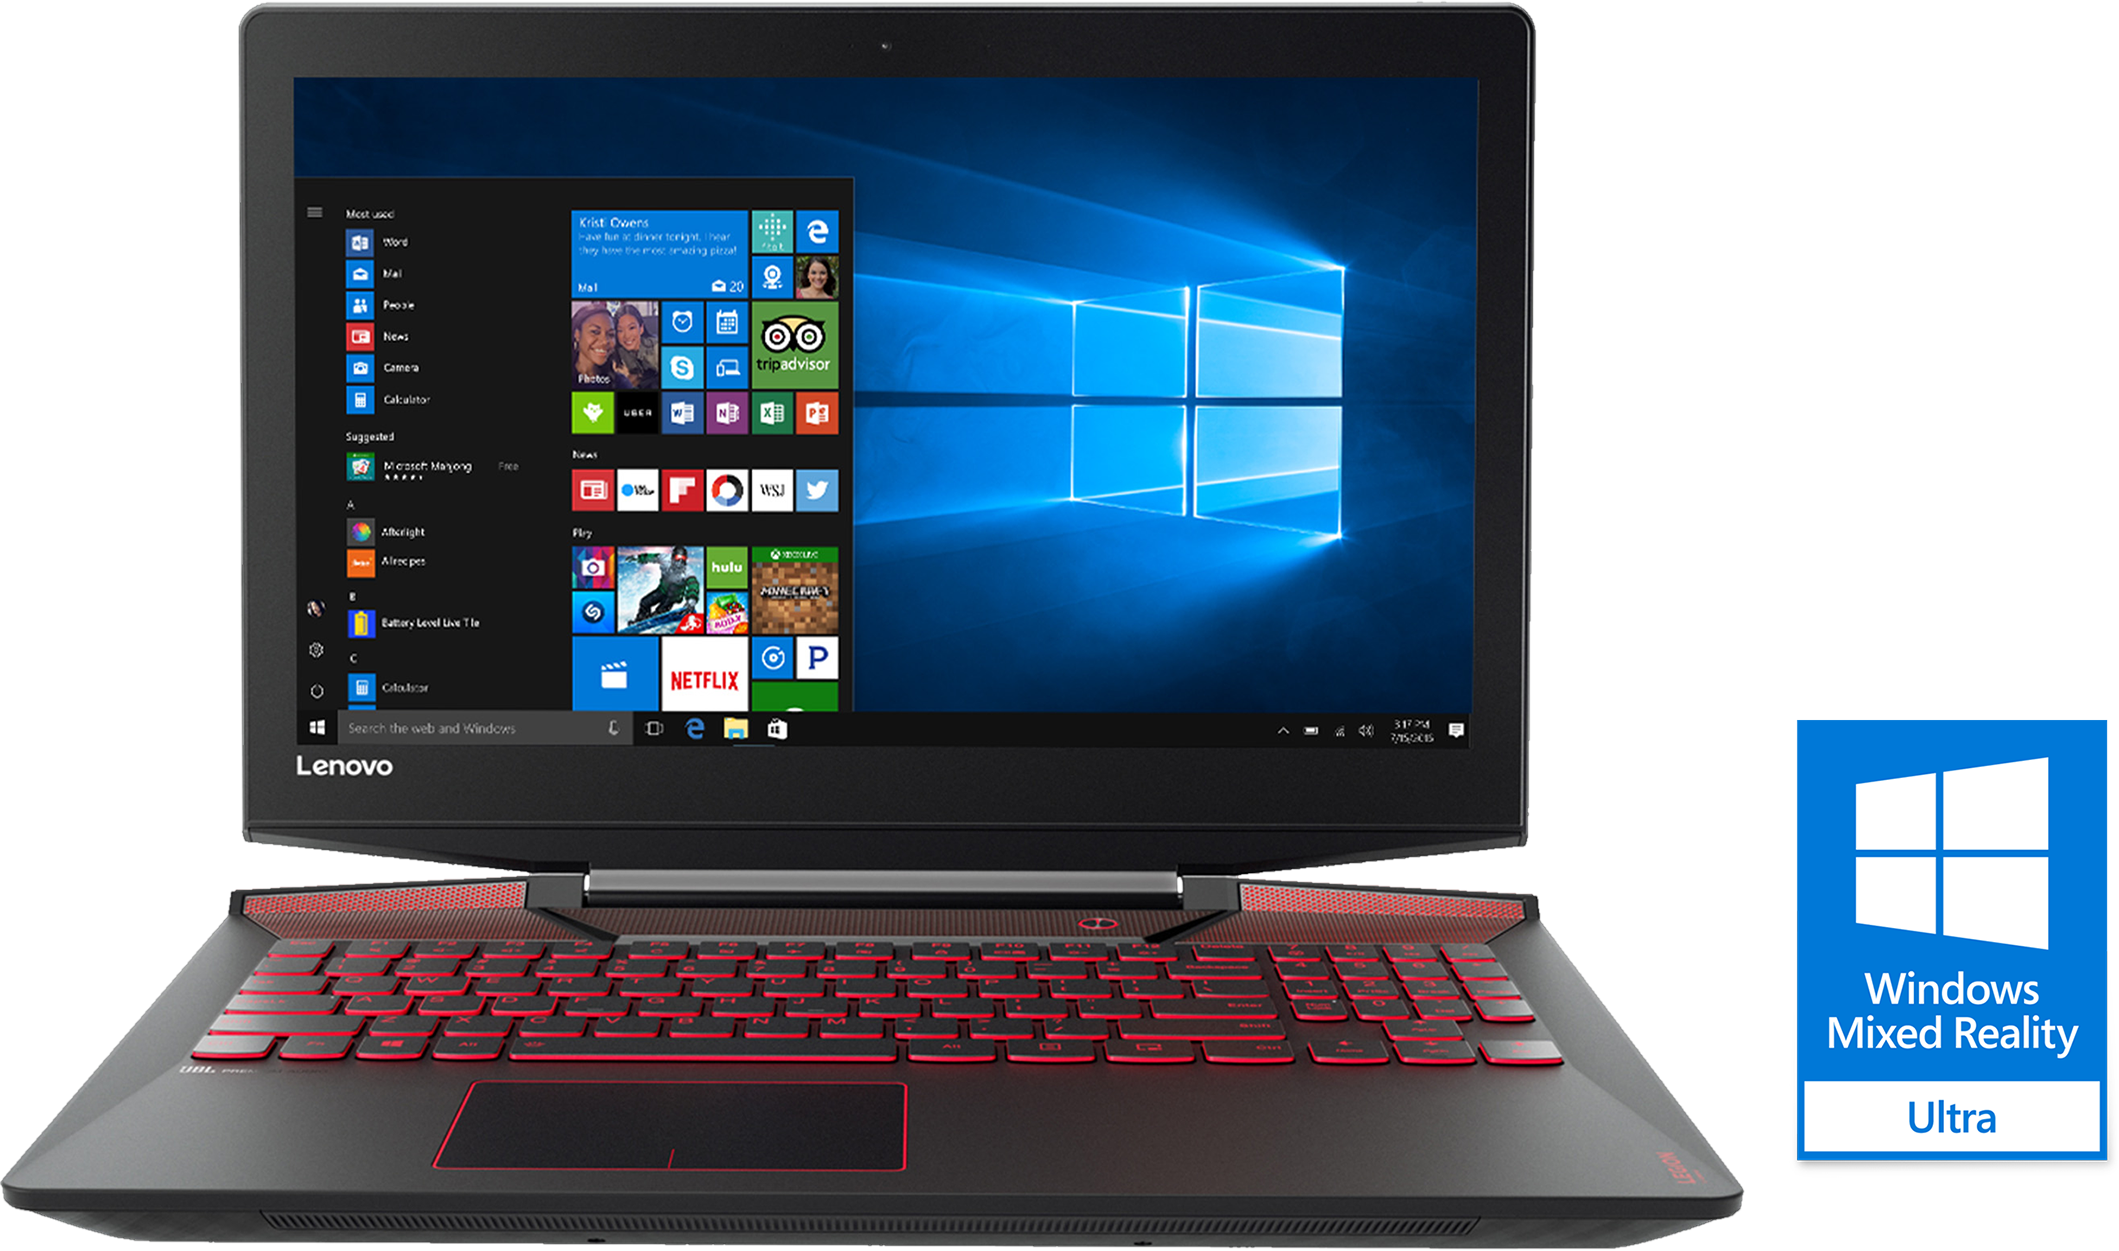 Lenovo Legion Y720 80VR0064US Gaming Laptop